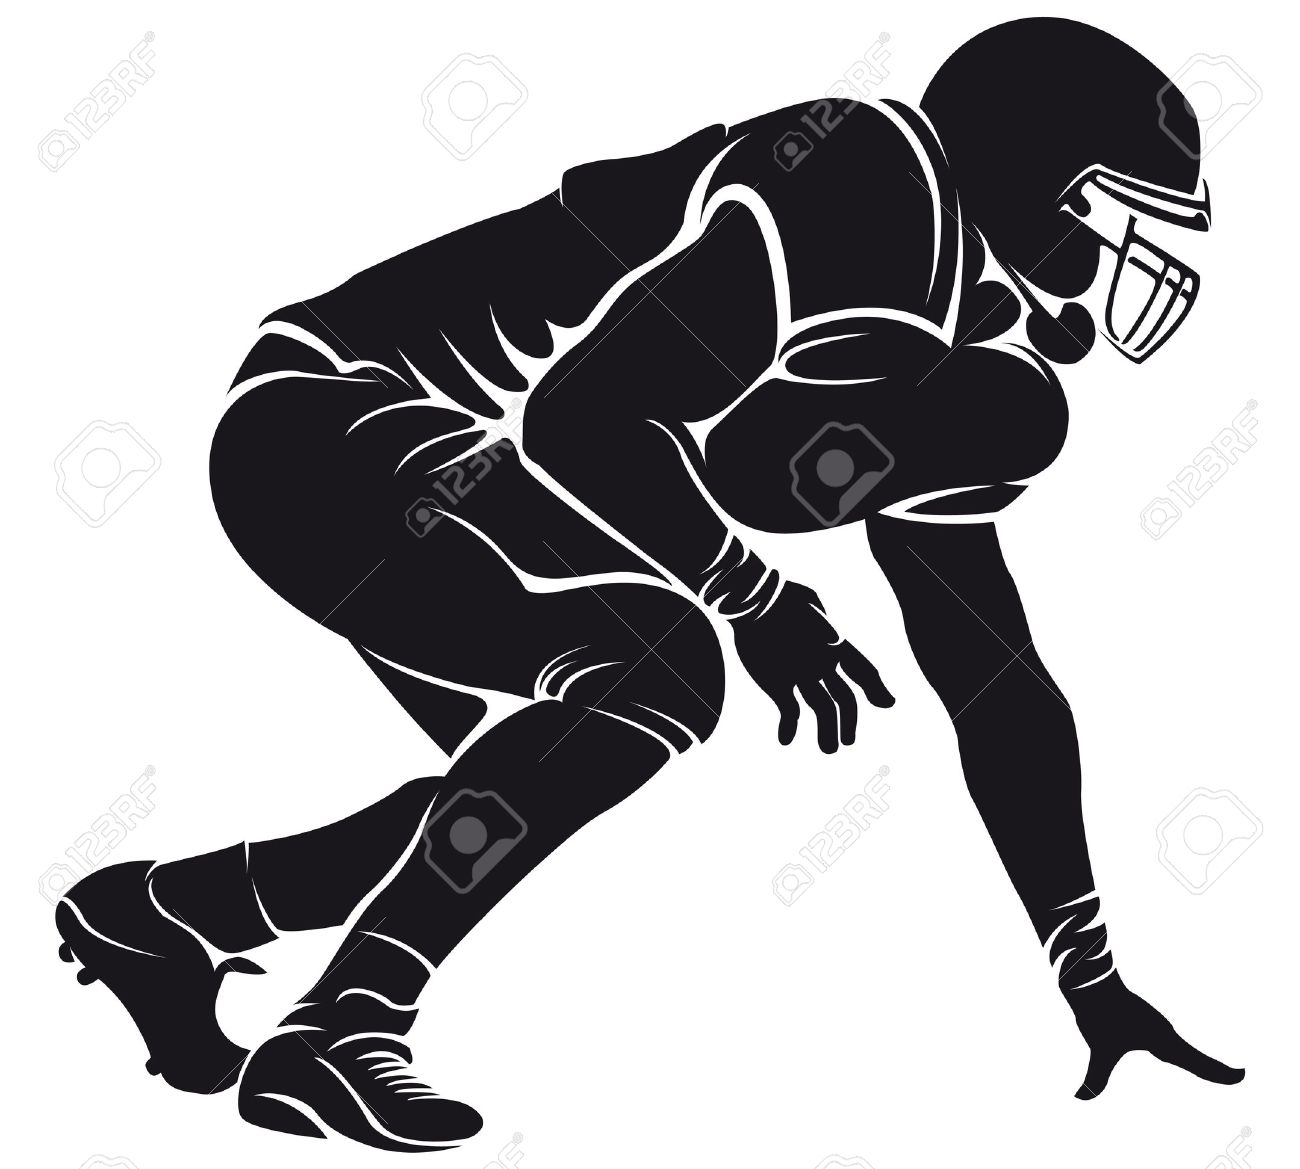 Nfl football character clipart picture freeuse Best Football Player Clipart #20919 - Clipartion.com picture freeuse